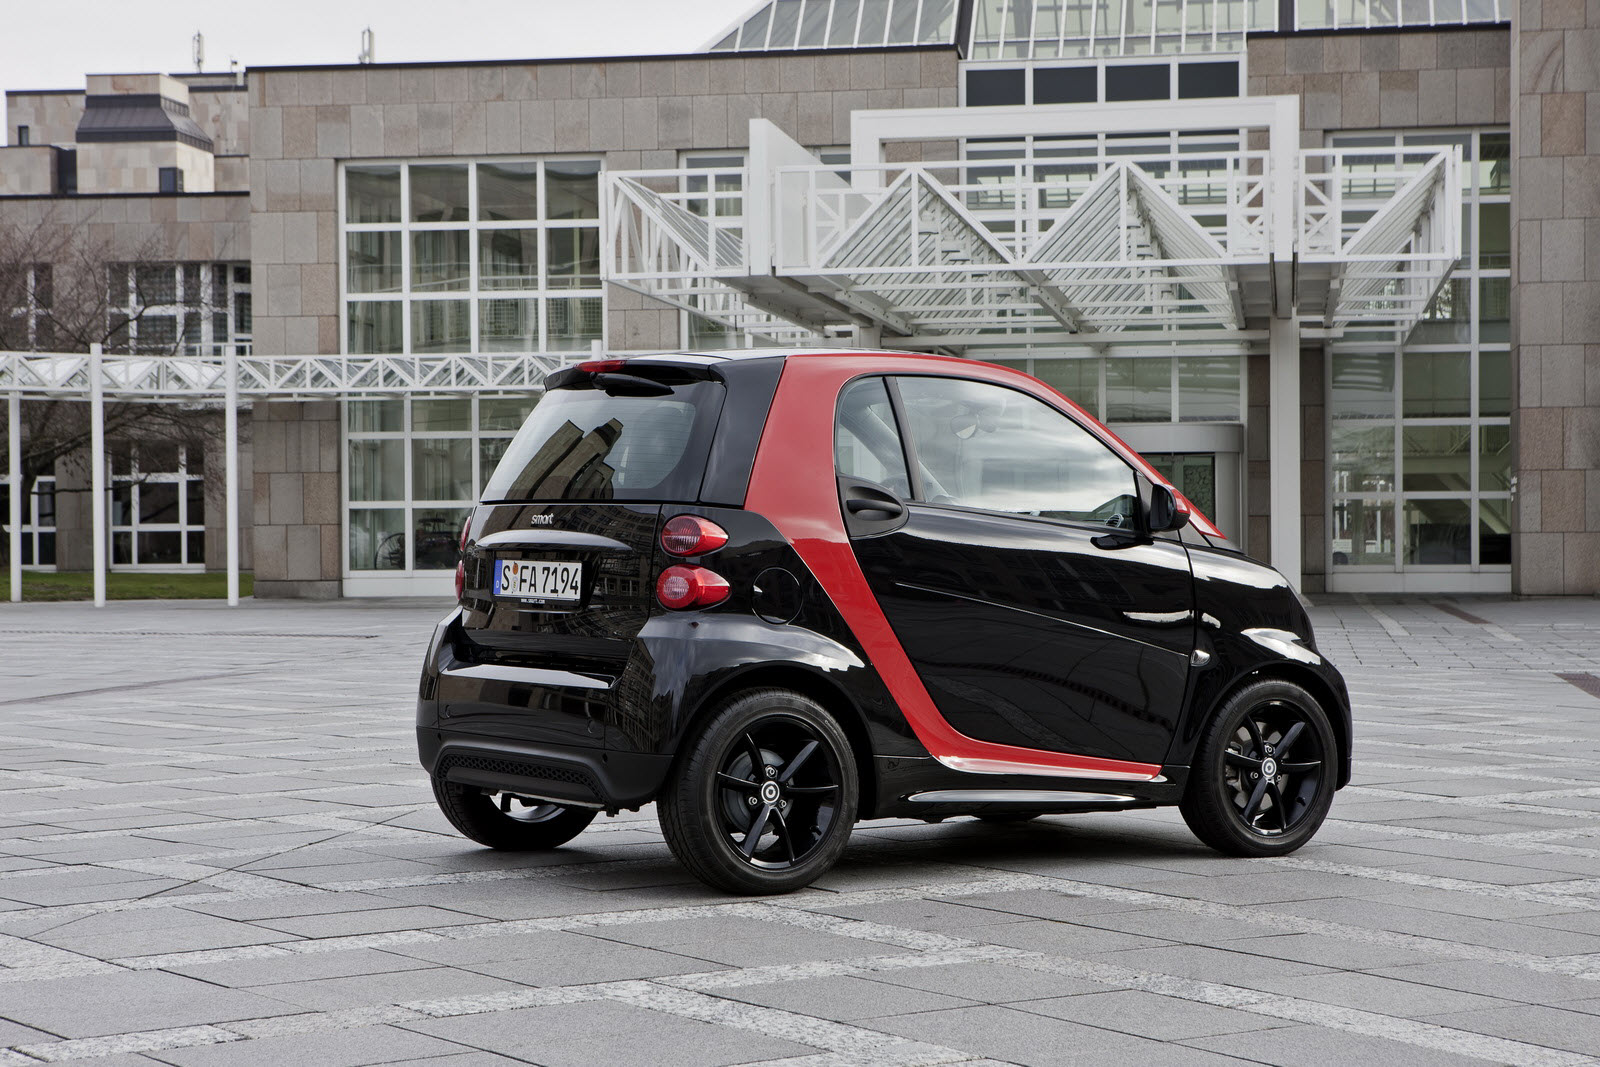 The Exterior Of Smart Fortwo Edition Sharpred Is Characterised By Striking Contrast Elegant Black And Extravagant Red Creating An Effect Like